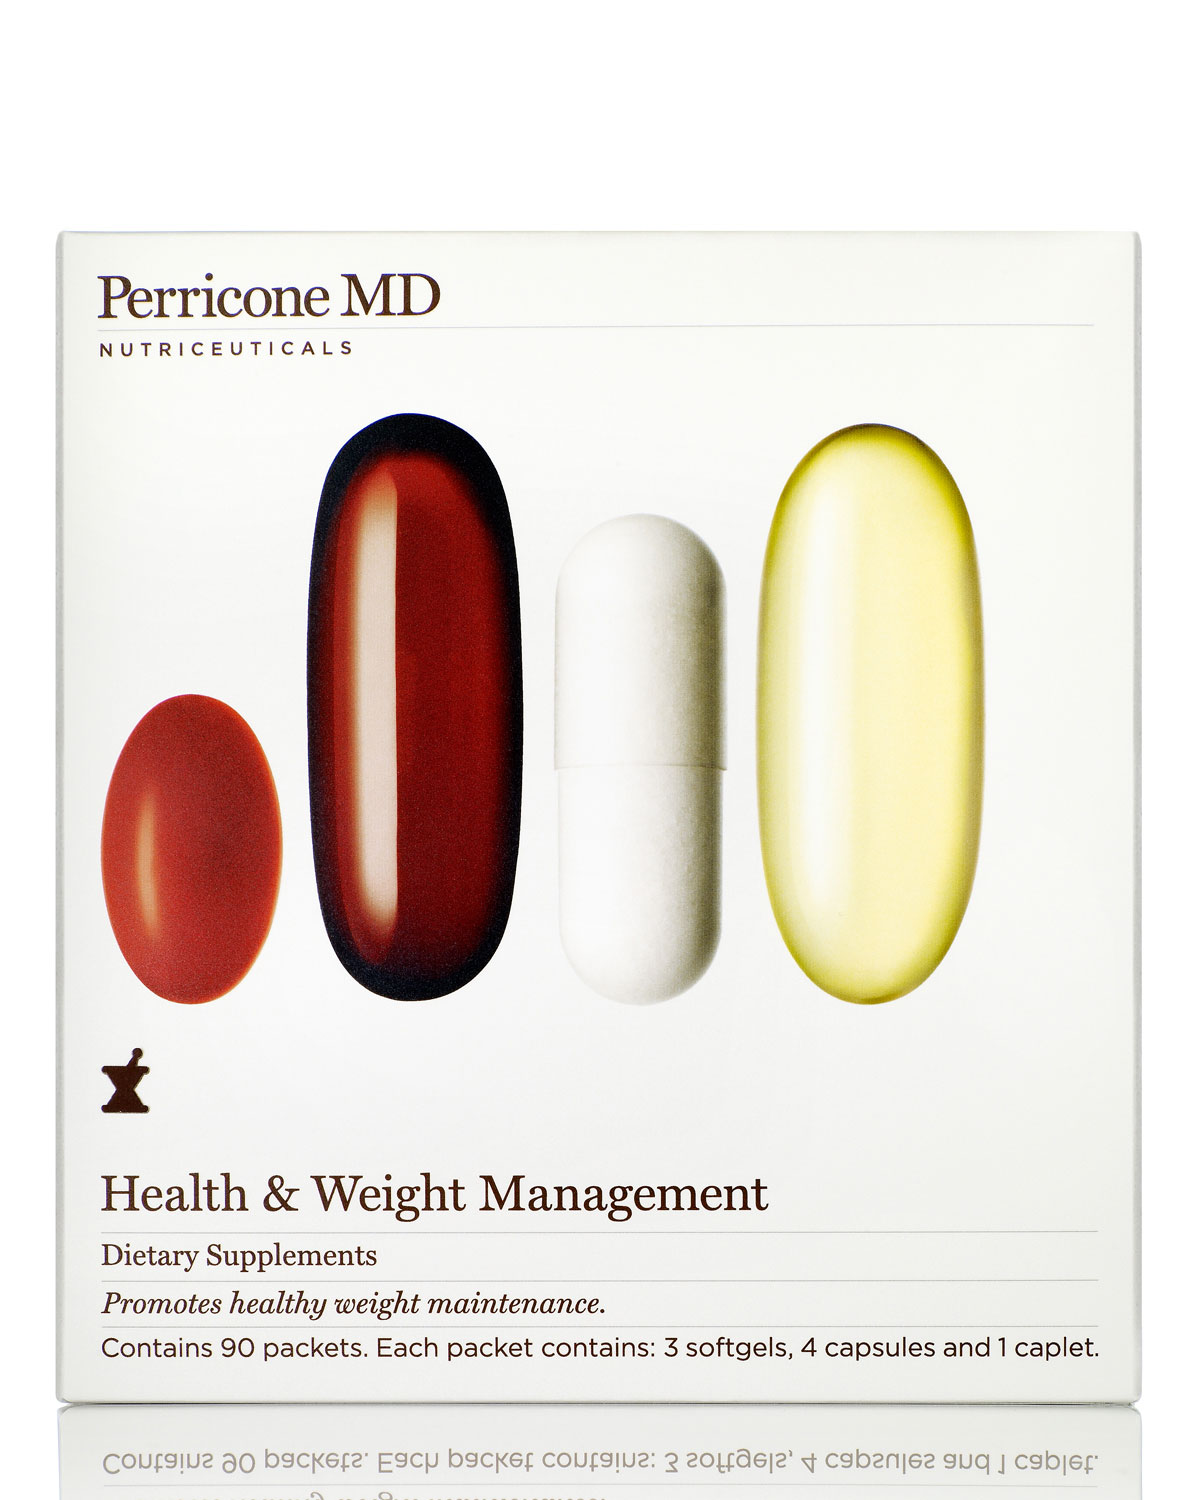 Health & Weight Management - Perricone MD